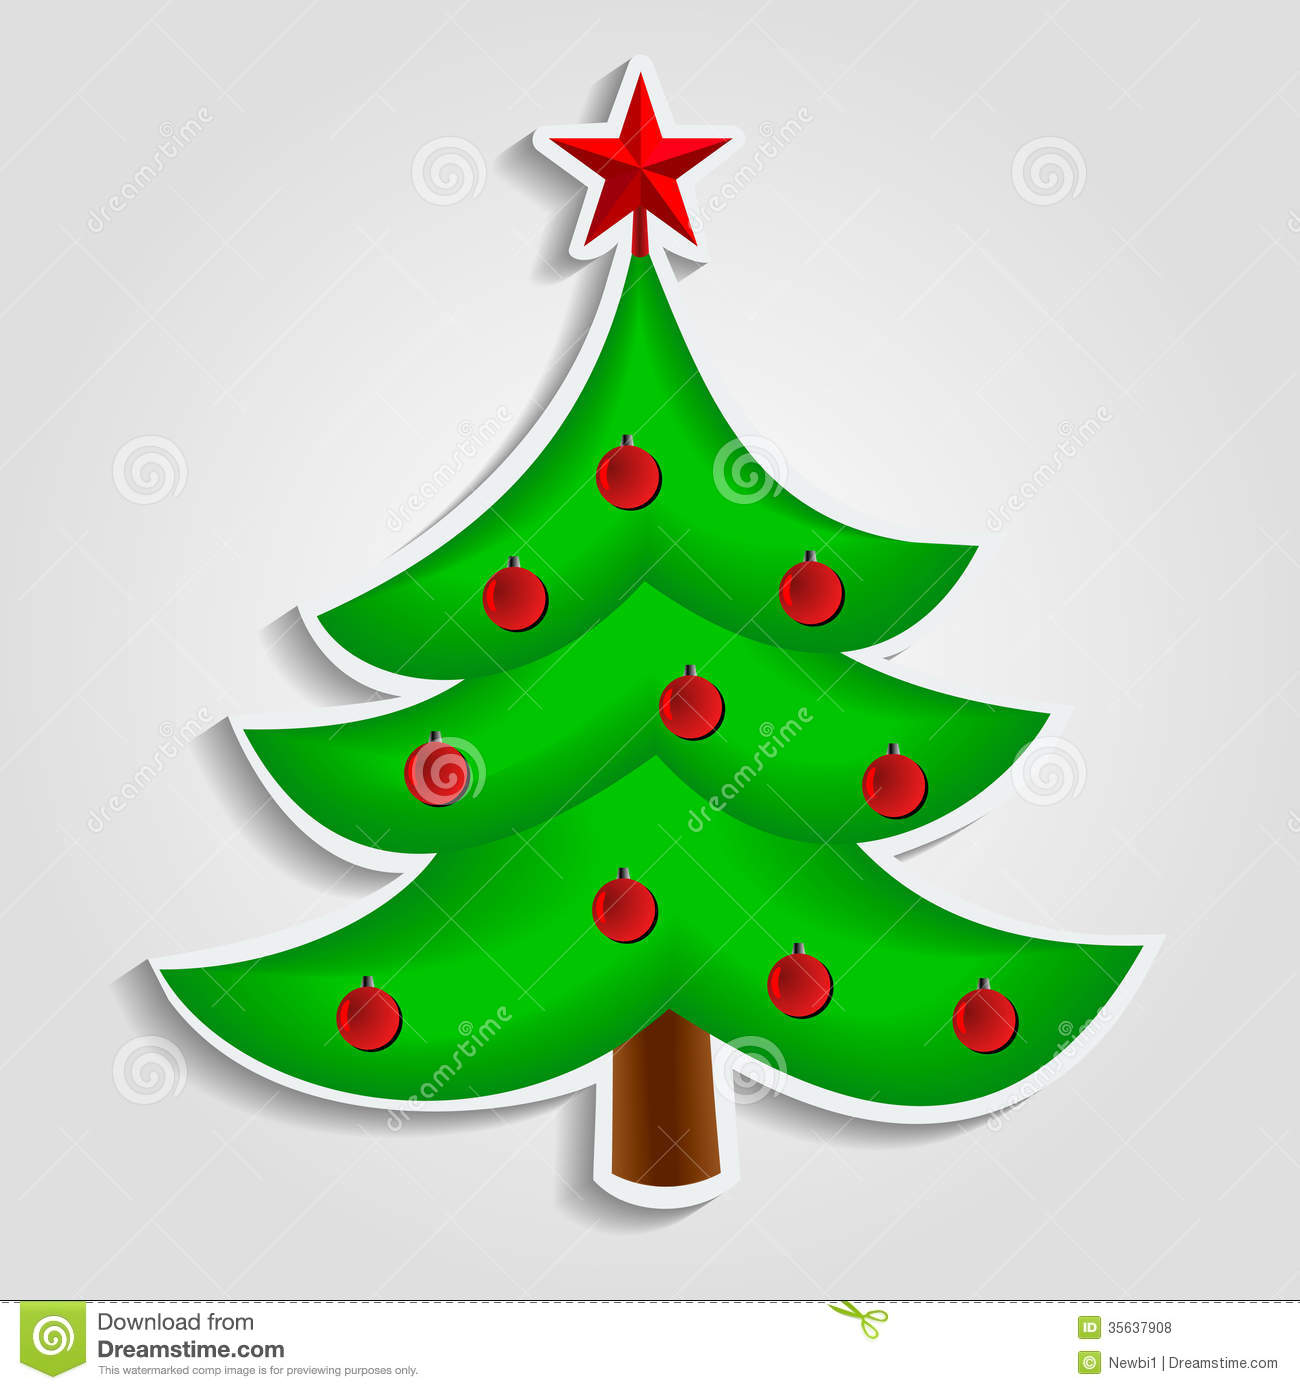 Christmas Tree Vector Image In Flat Design Royalty Free Stock Photos ...